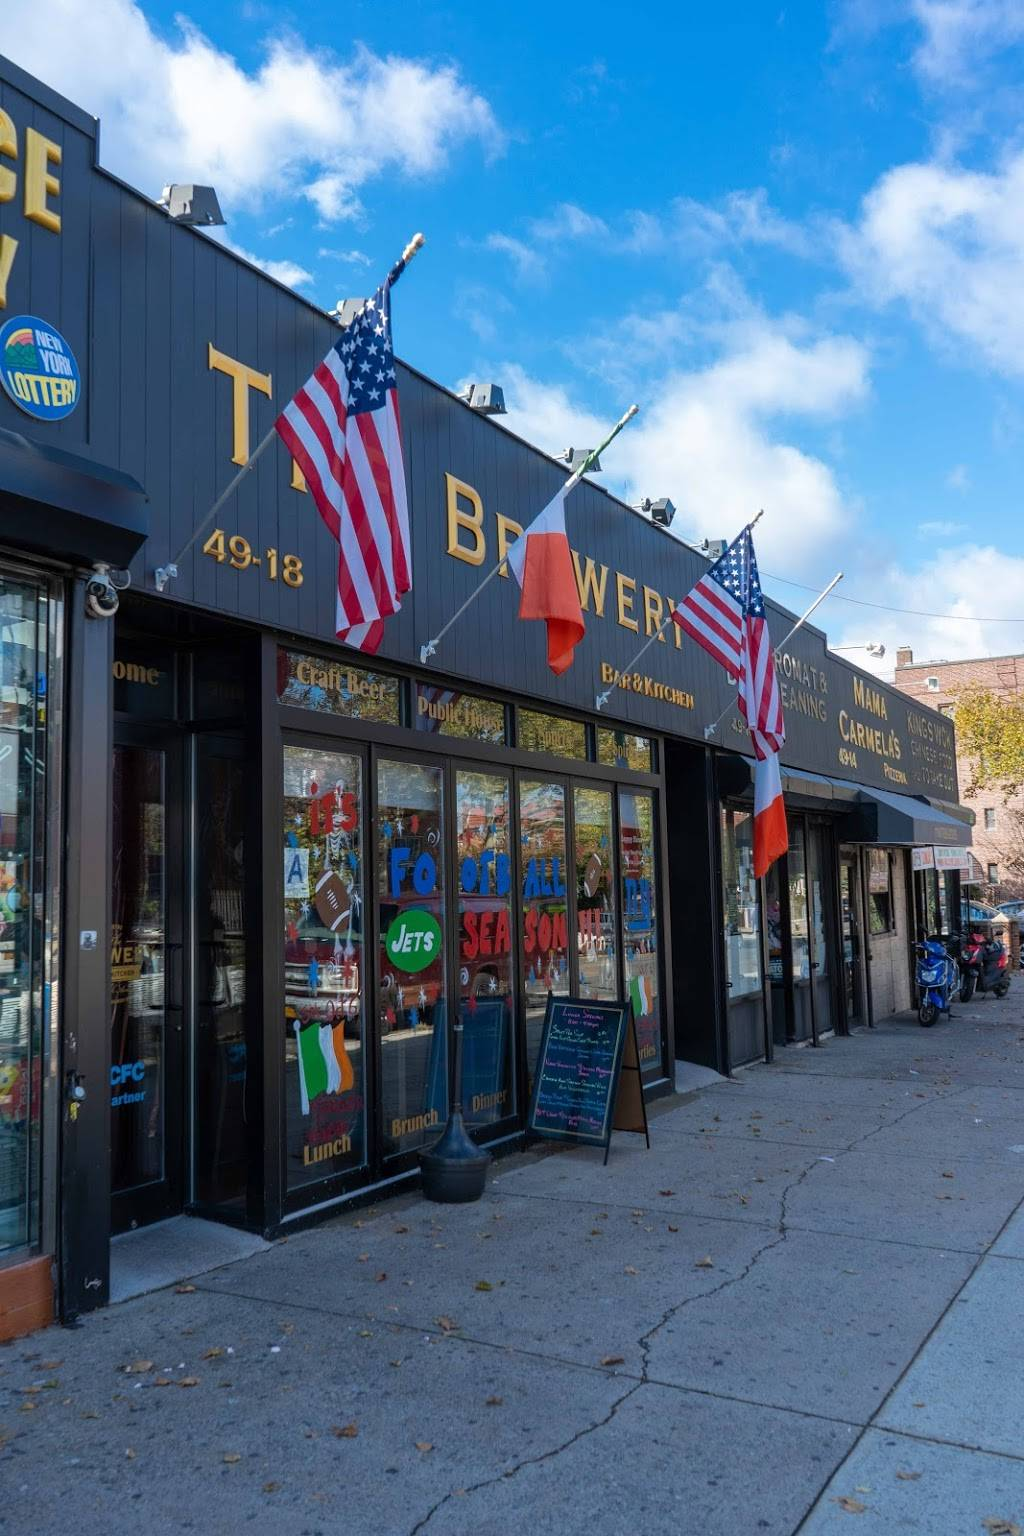 The Brewery Bar & Kitchen   restaurant   49-18 30th Ave, Woodside, NY 11377, USA   7187778007 OR +1 718-777-8007